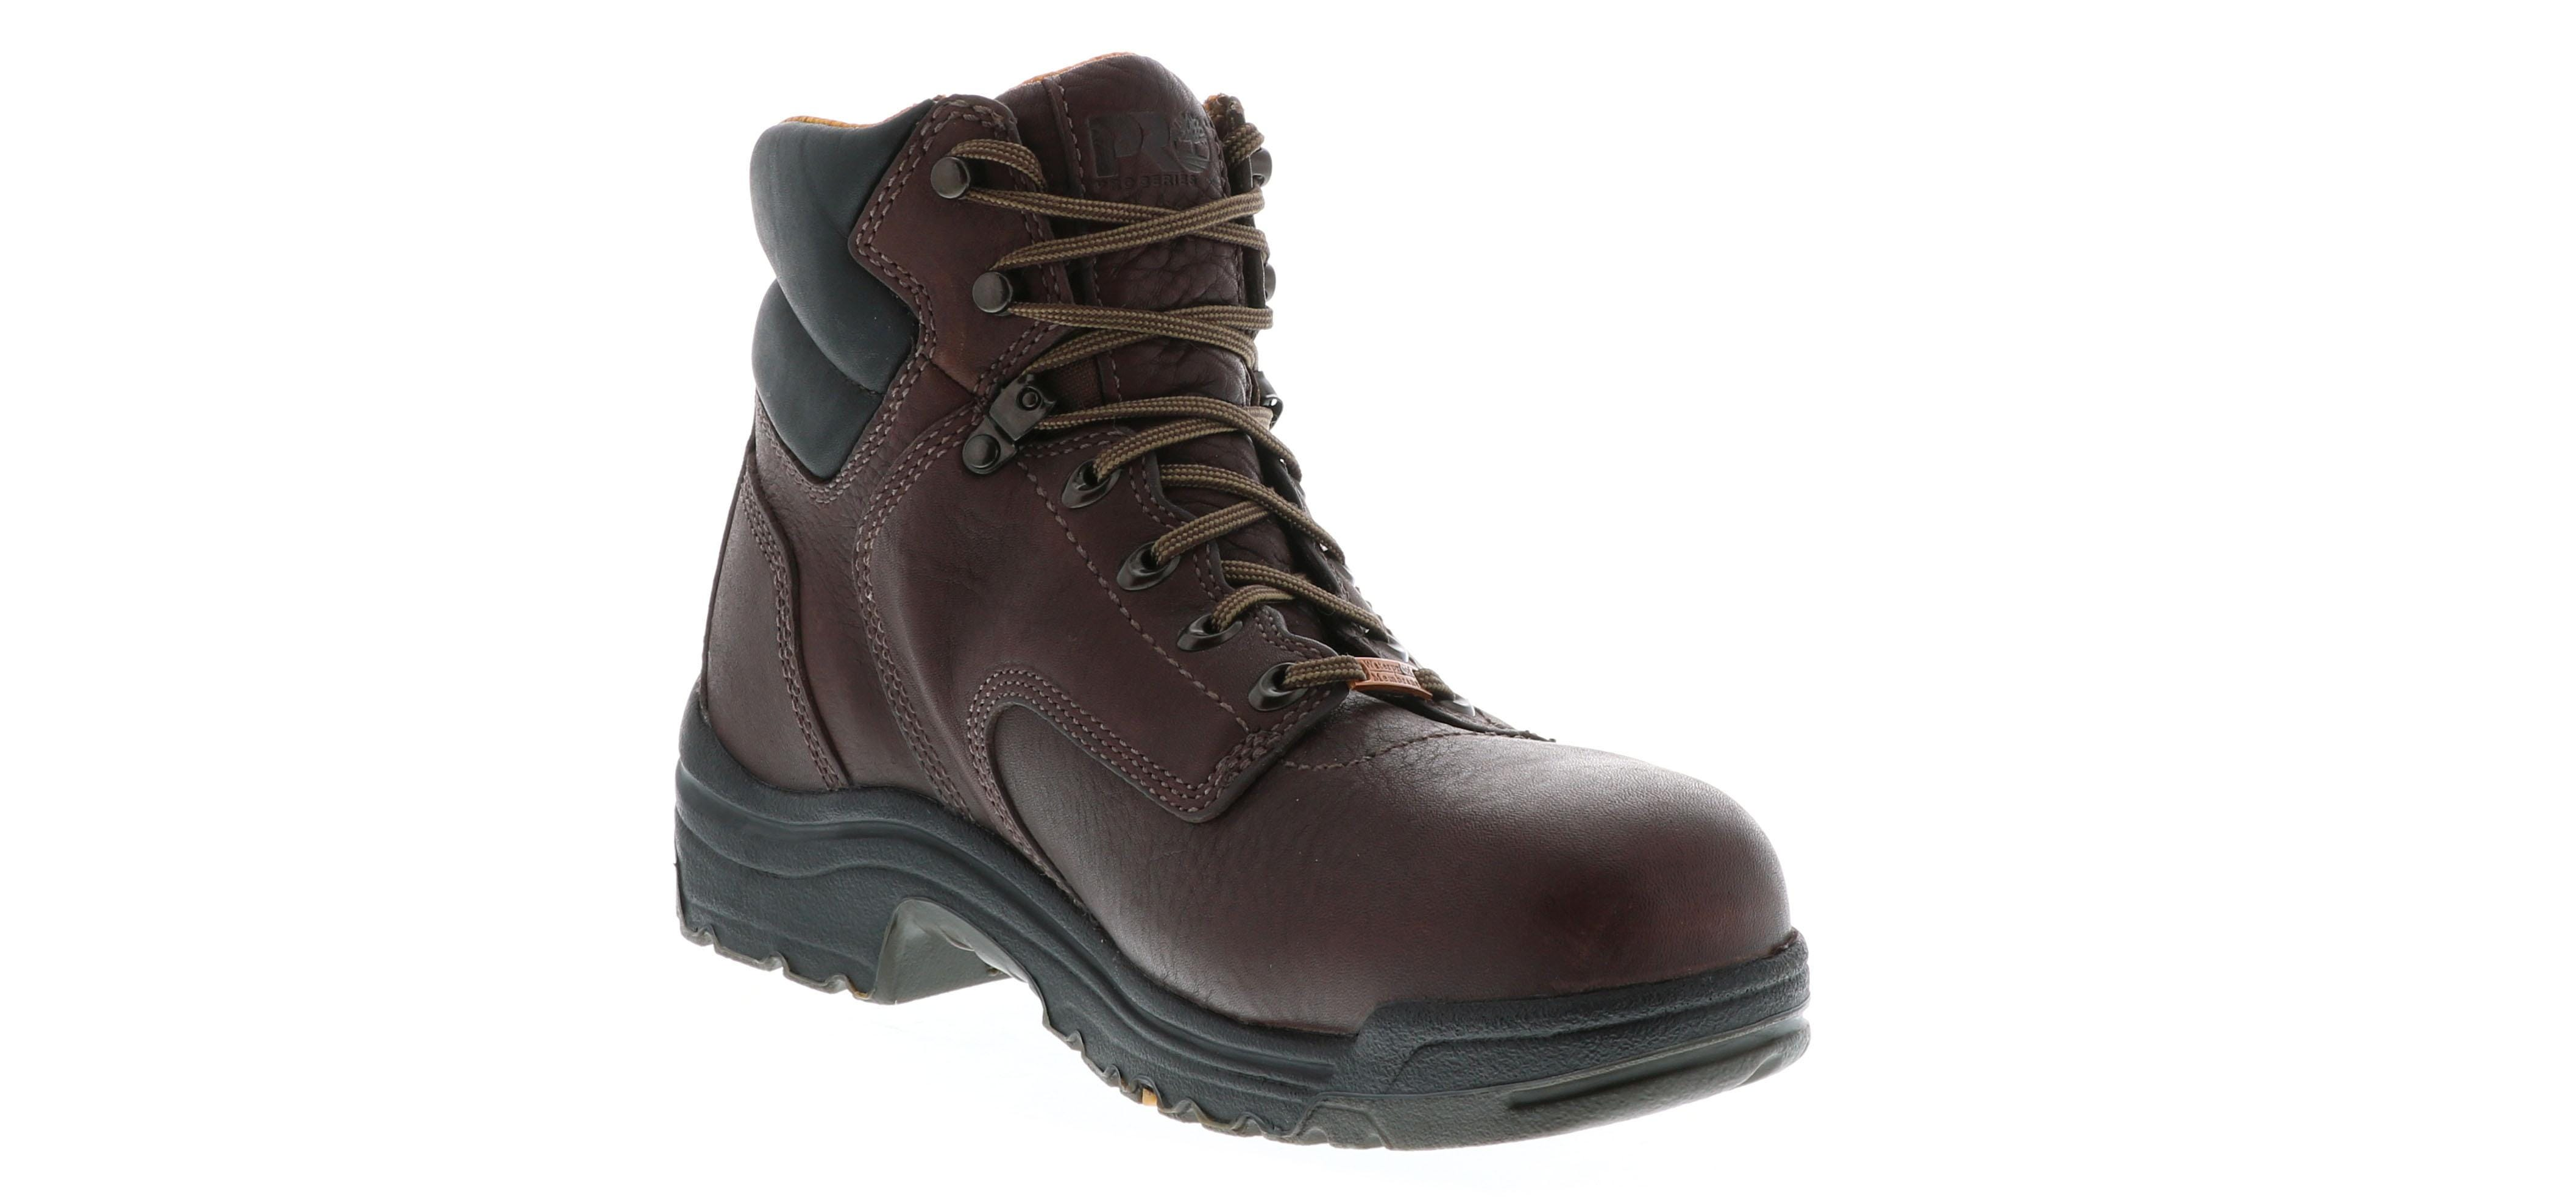 search for genuine choose best classic styles Men's Timberland Pro Titan Safety Toe